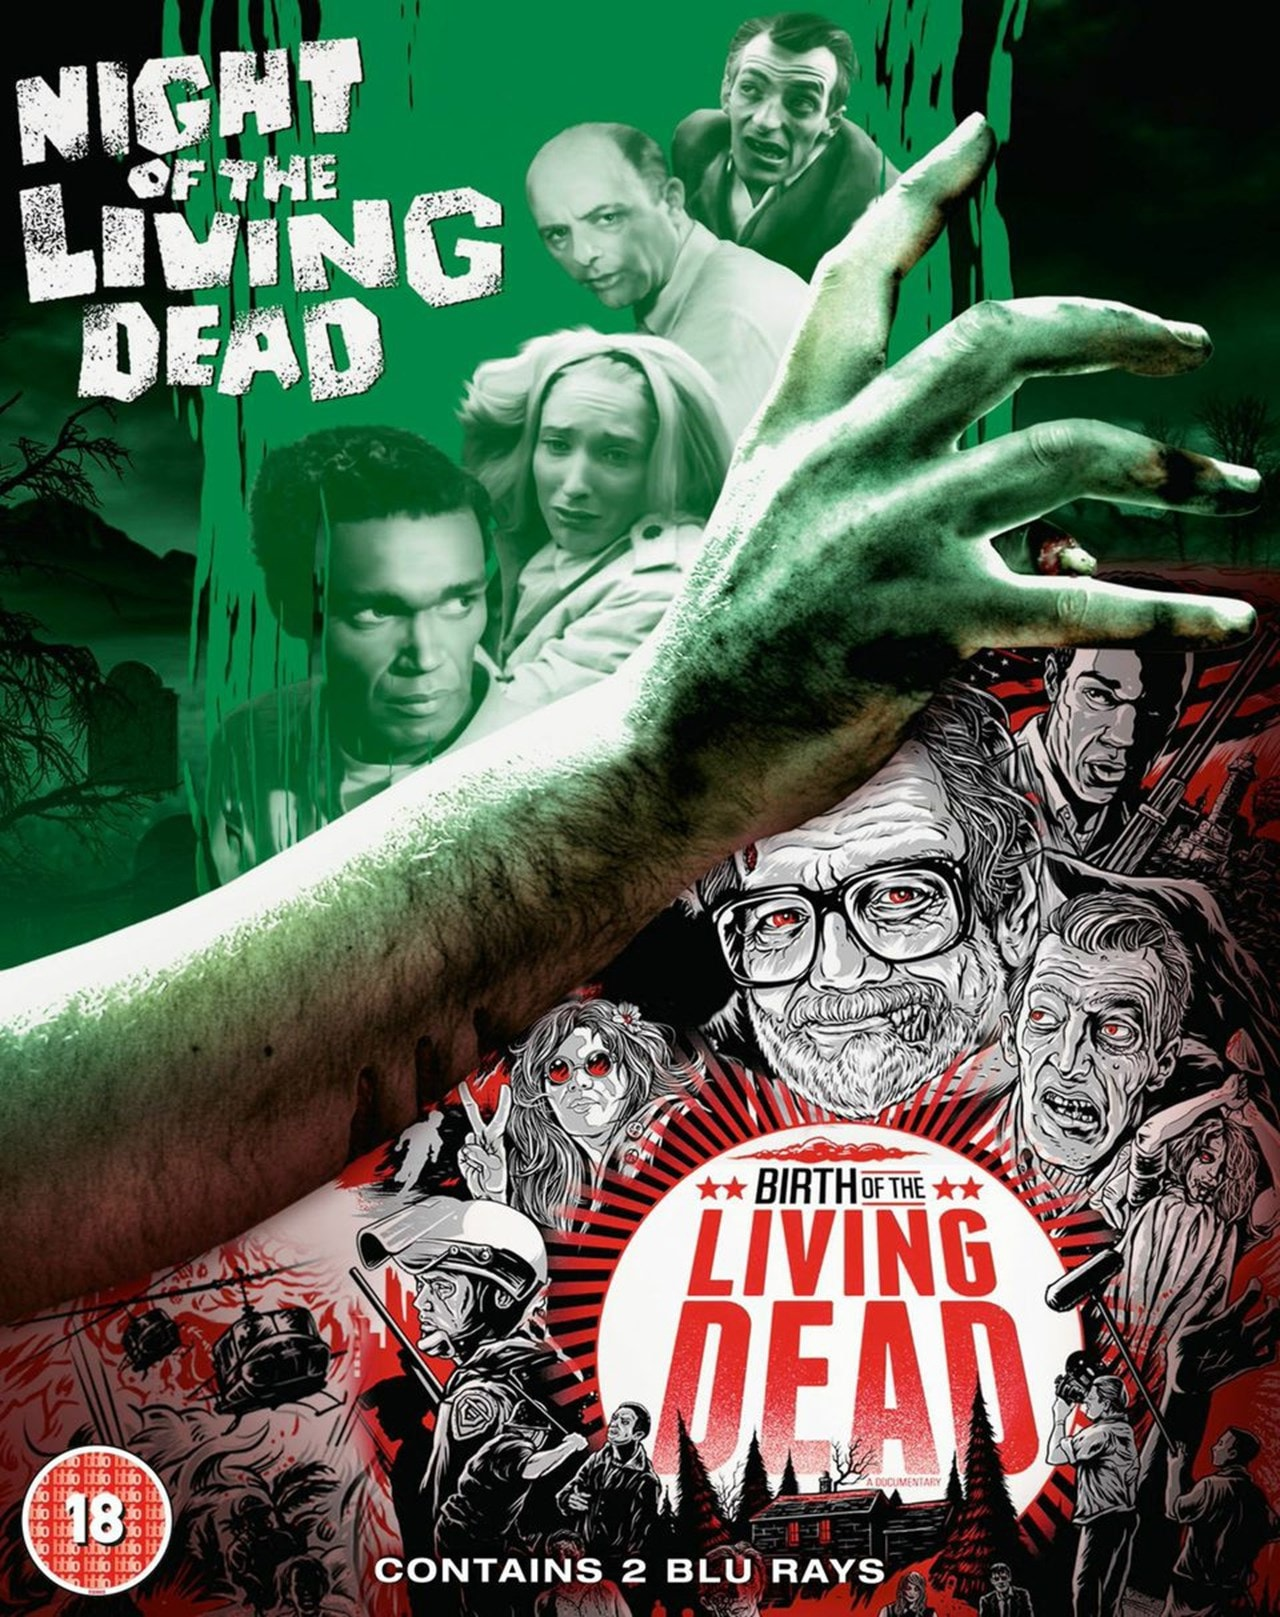 Birth of the Living Dead/Night of the Living Dead - 1